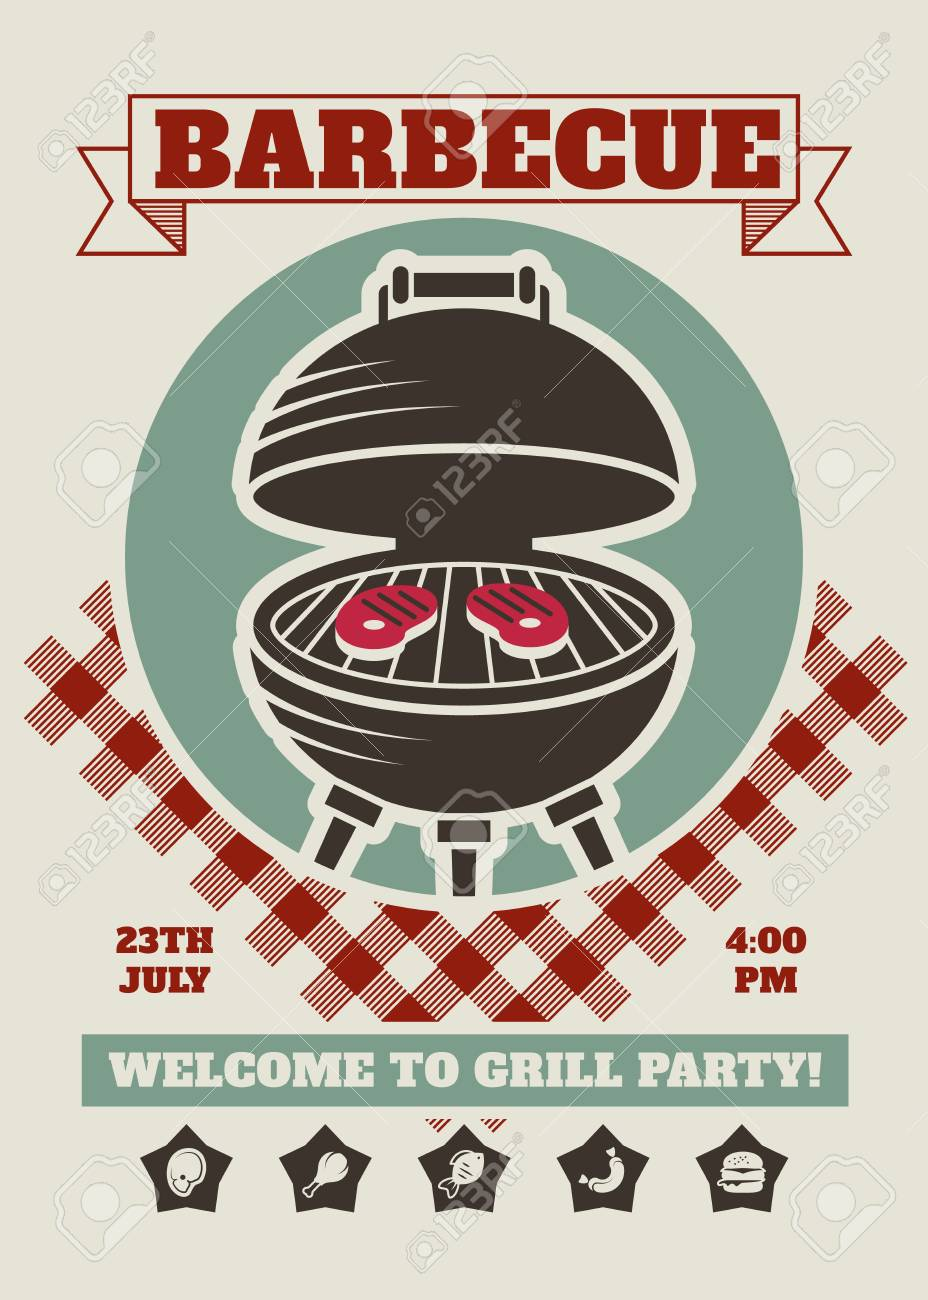 retro barbecue party restaurant invitation template bbq cookout